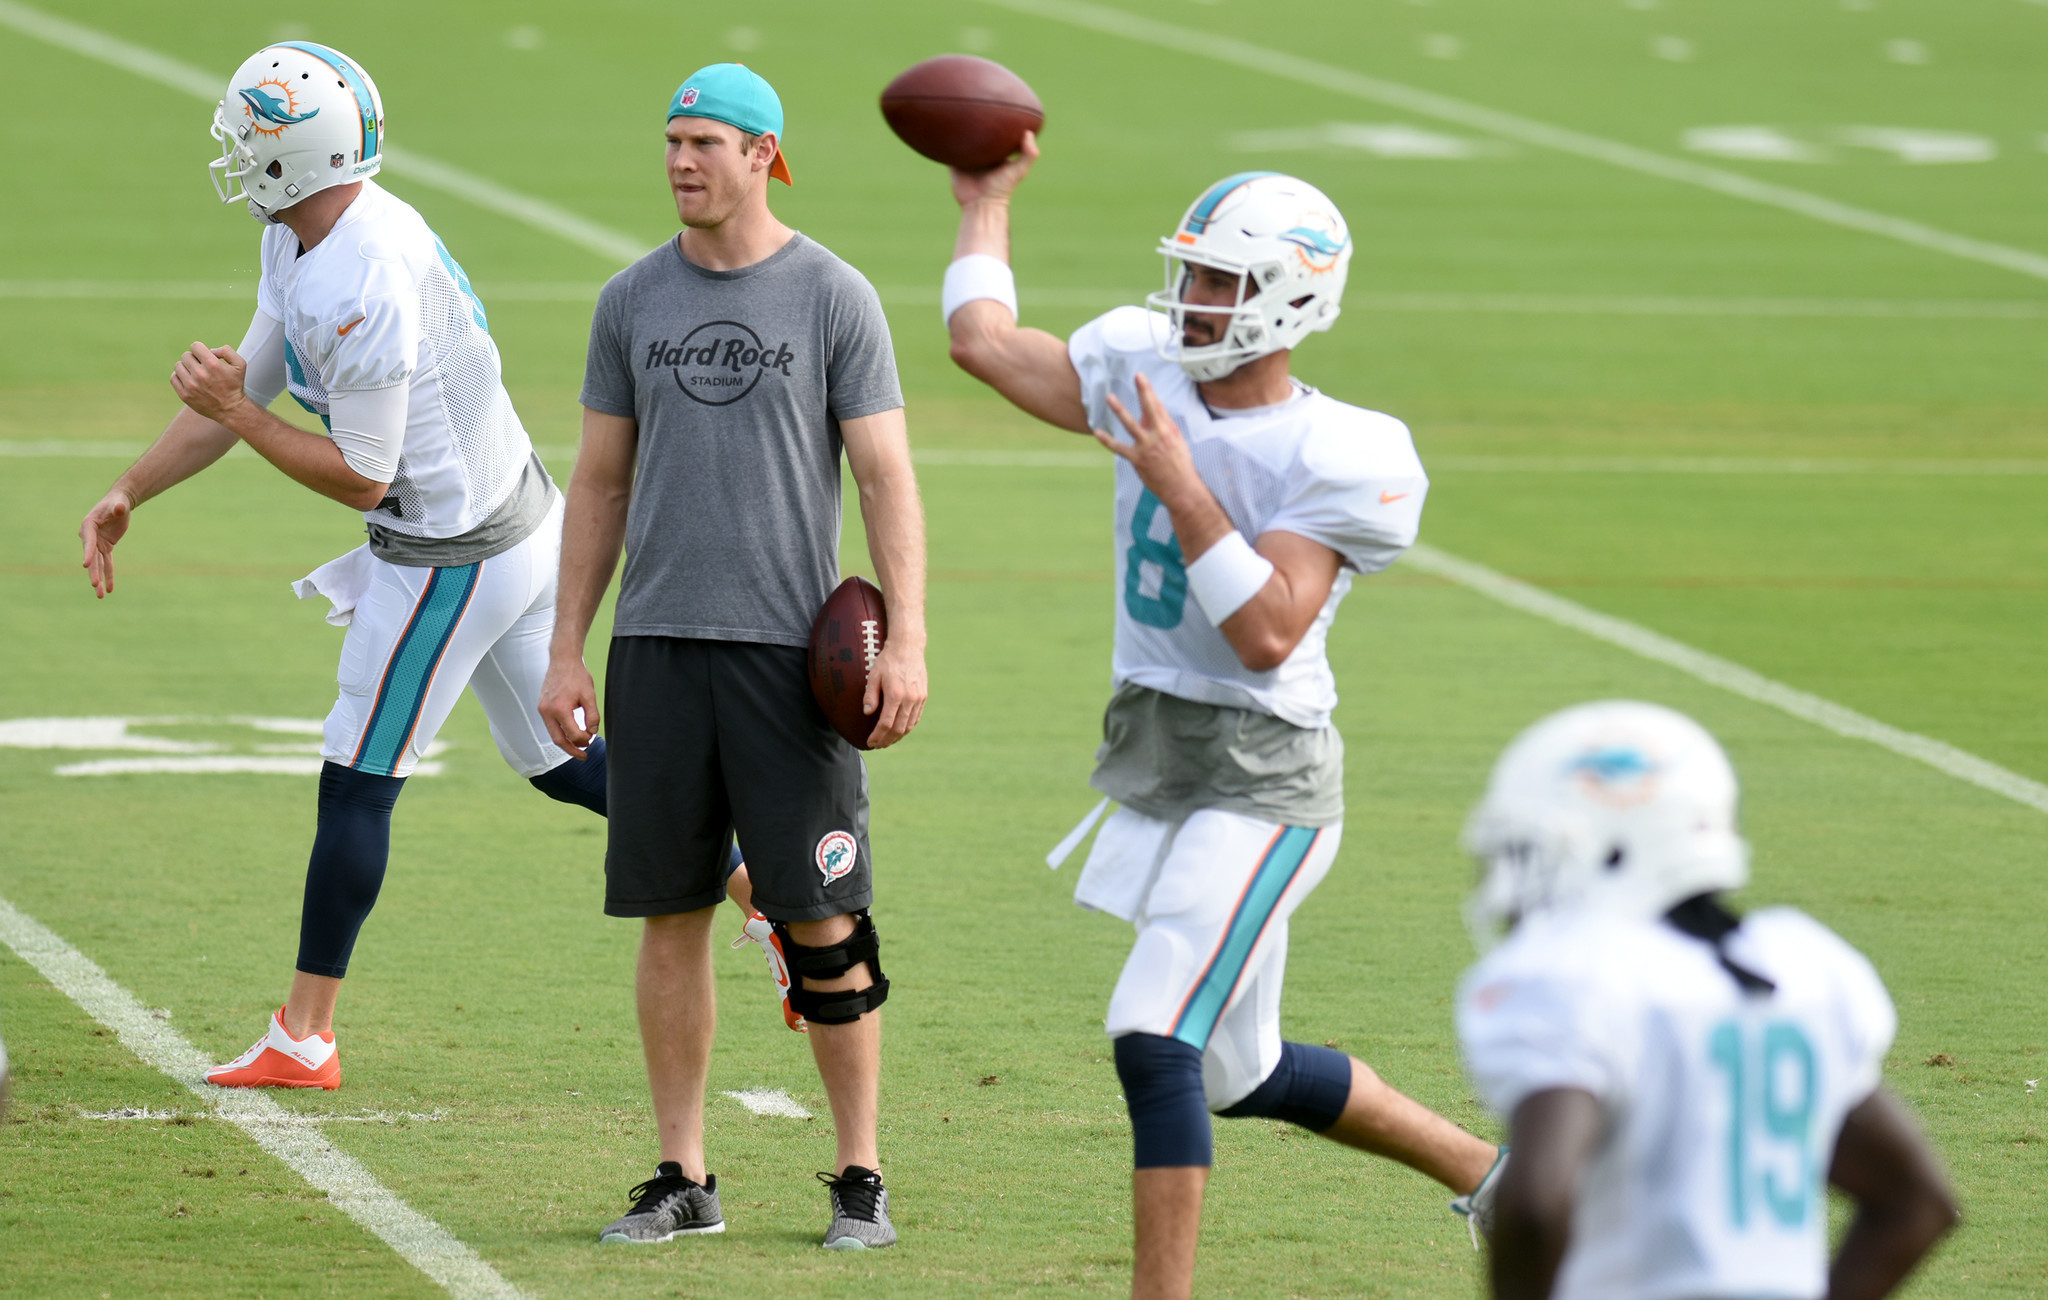 Sfl-perkins-qb-is-now-dolphins-strongest-unit-commentary-20170119